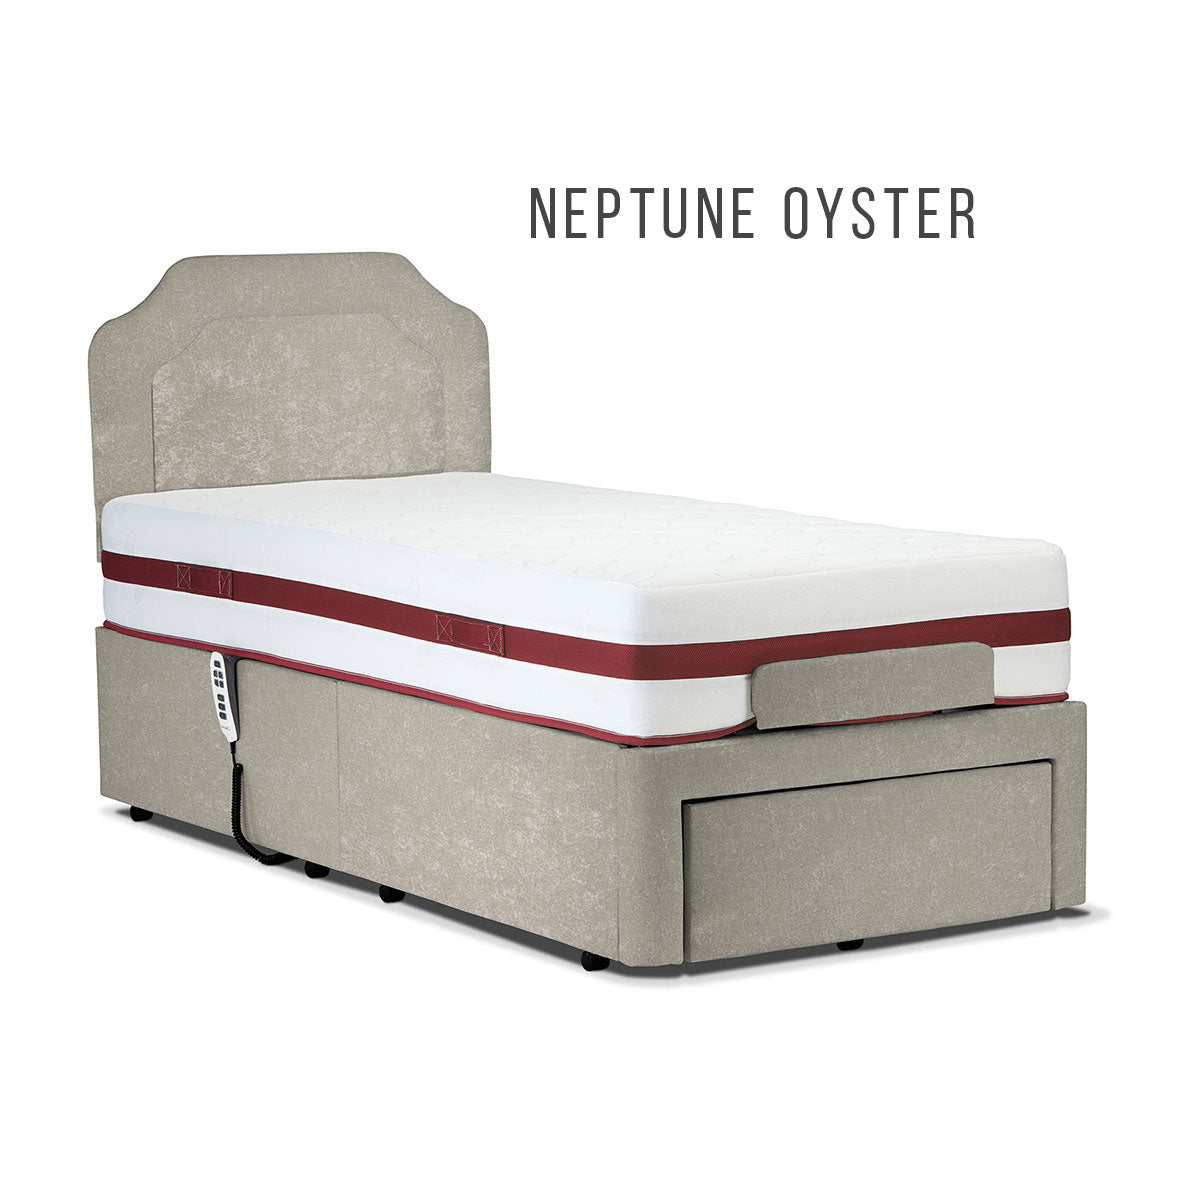 Sherborne 5' Dorchester Head and Foot Adjustable Bed